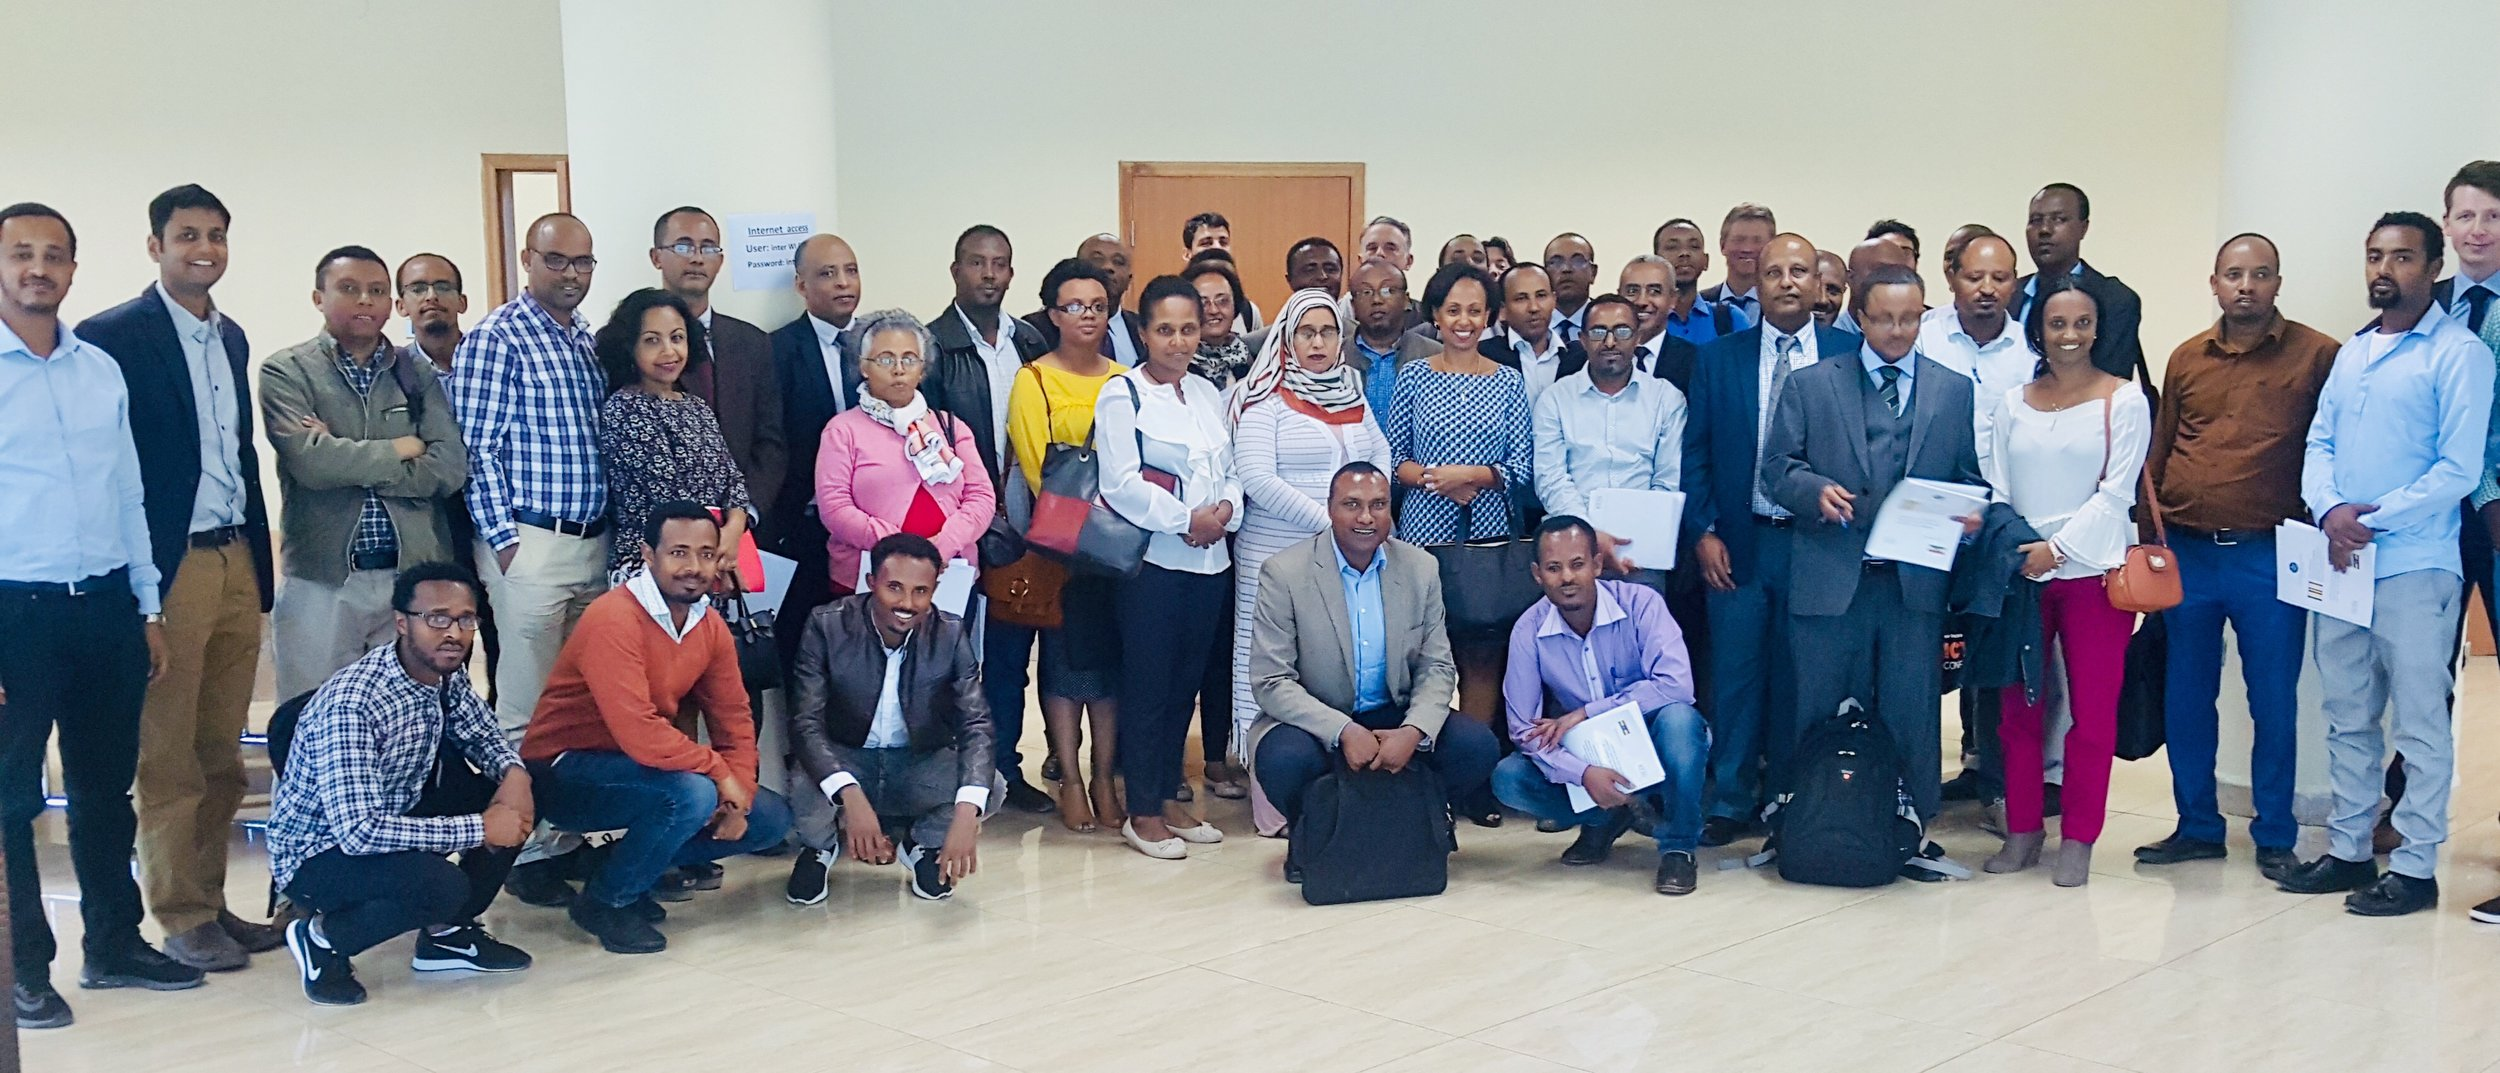 participants in workshop launching ethiopia ncdi poverty report.